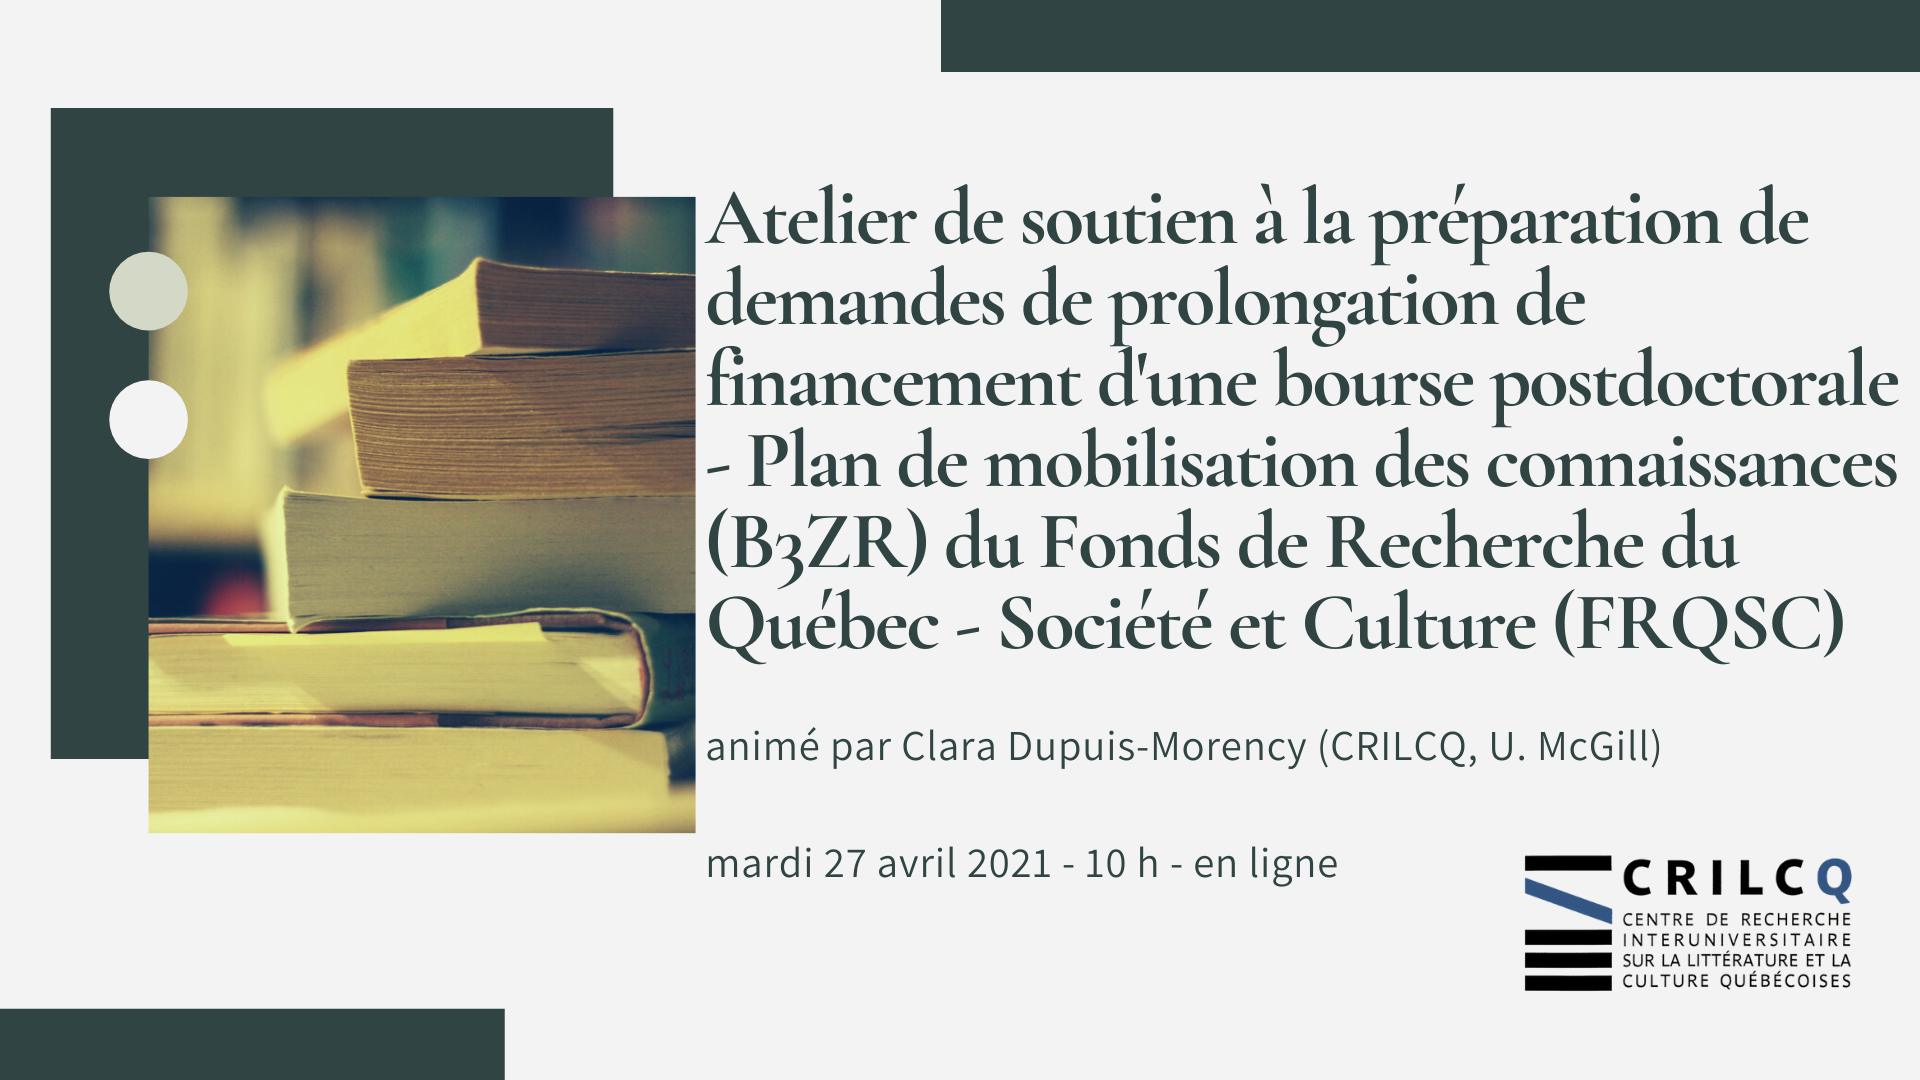 IMAGE-evenement-atelier-soutien-prolongation-bourses-postdoctorales